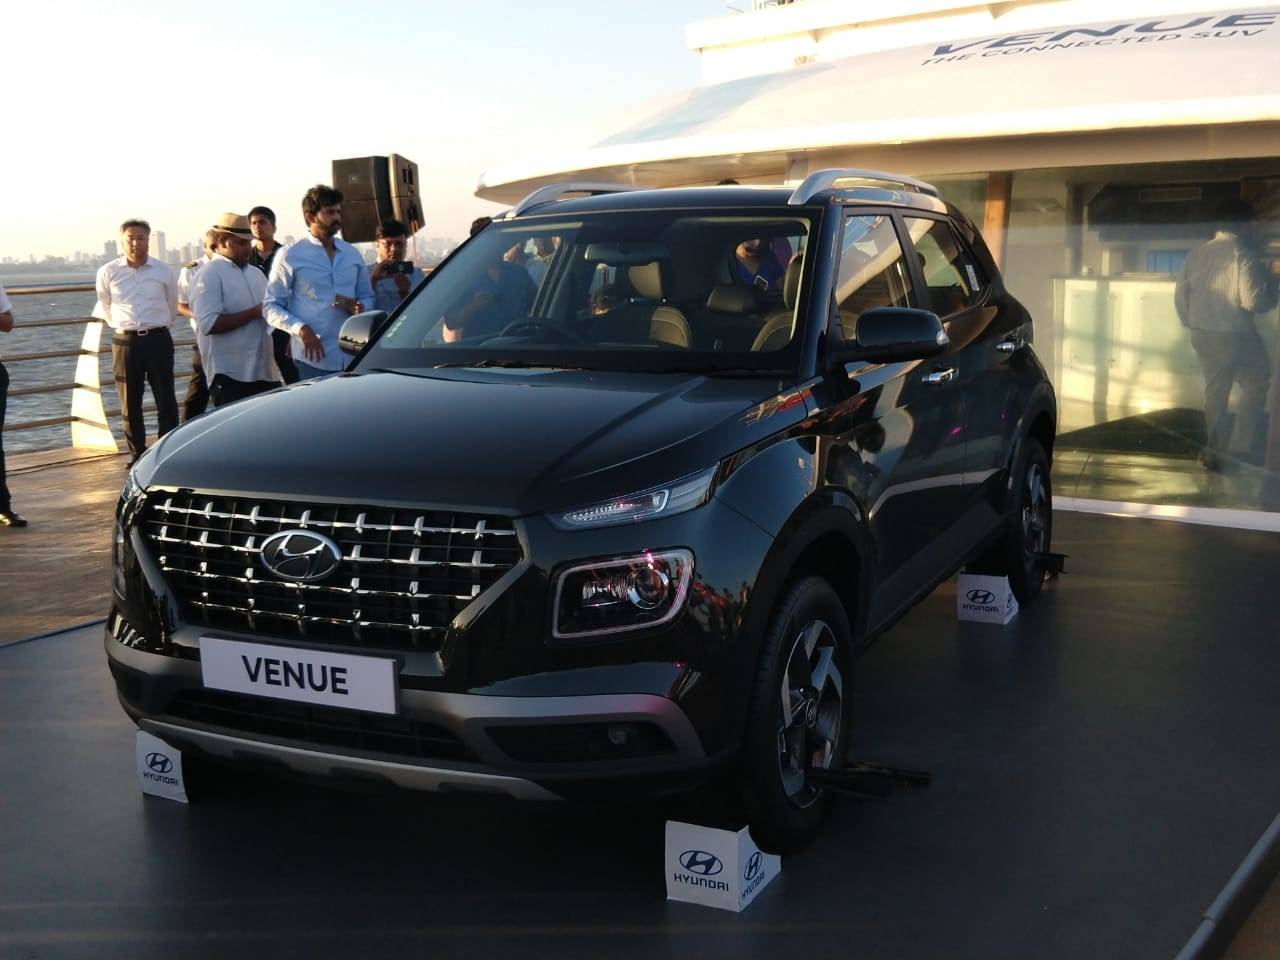 Hyundai Venue Bookings Hyundai Venue Bookings Open At Rs 21 000 Auto News Et Auto